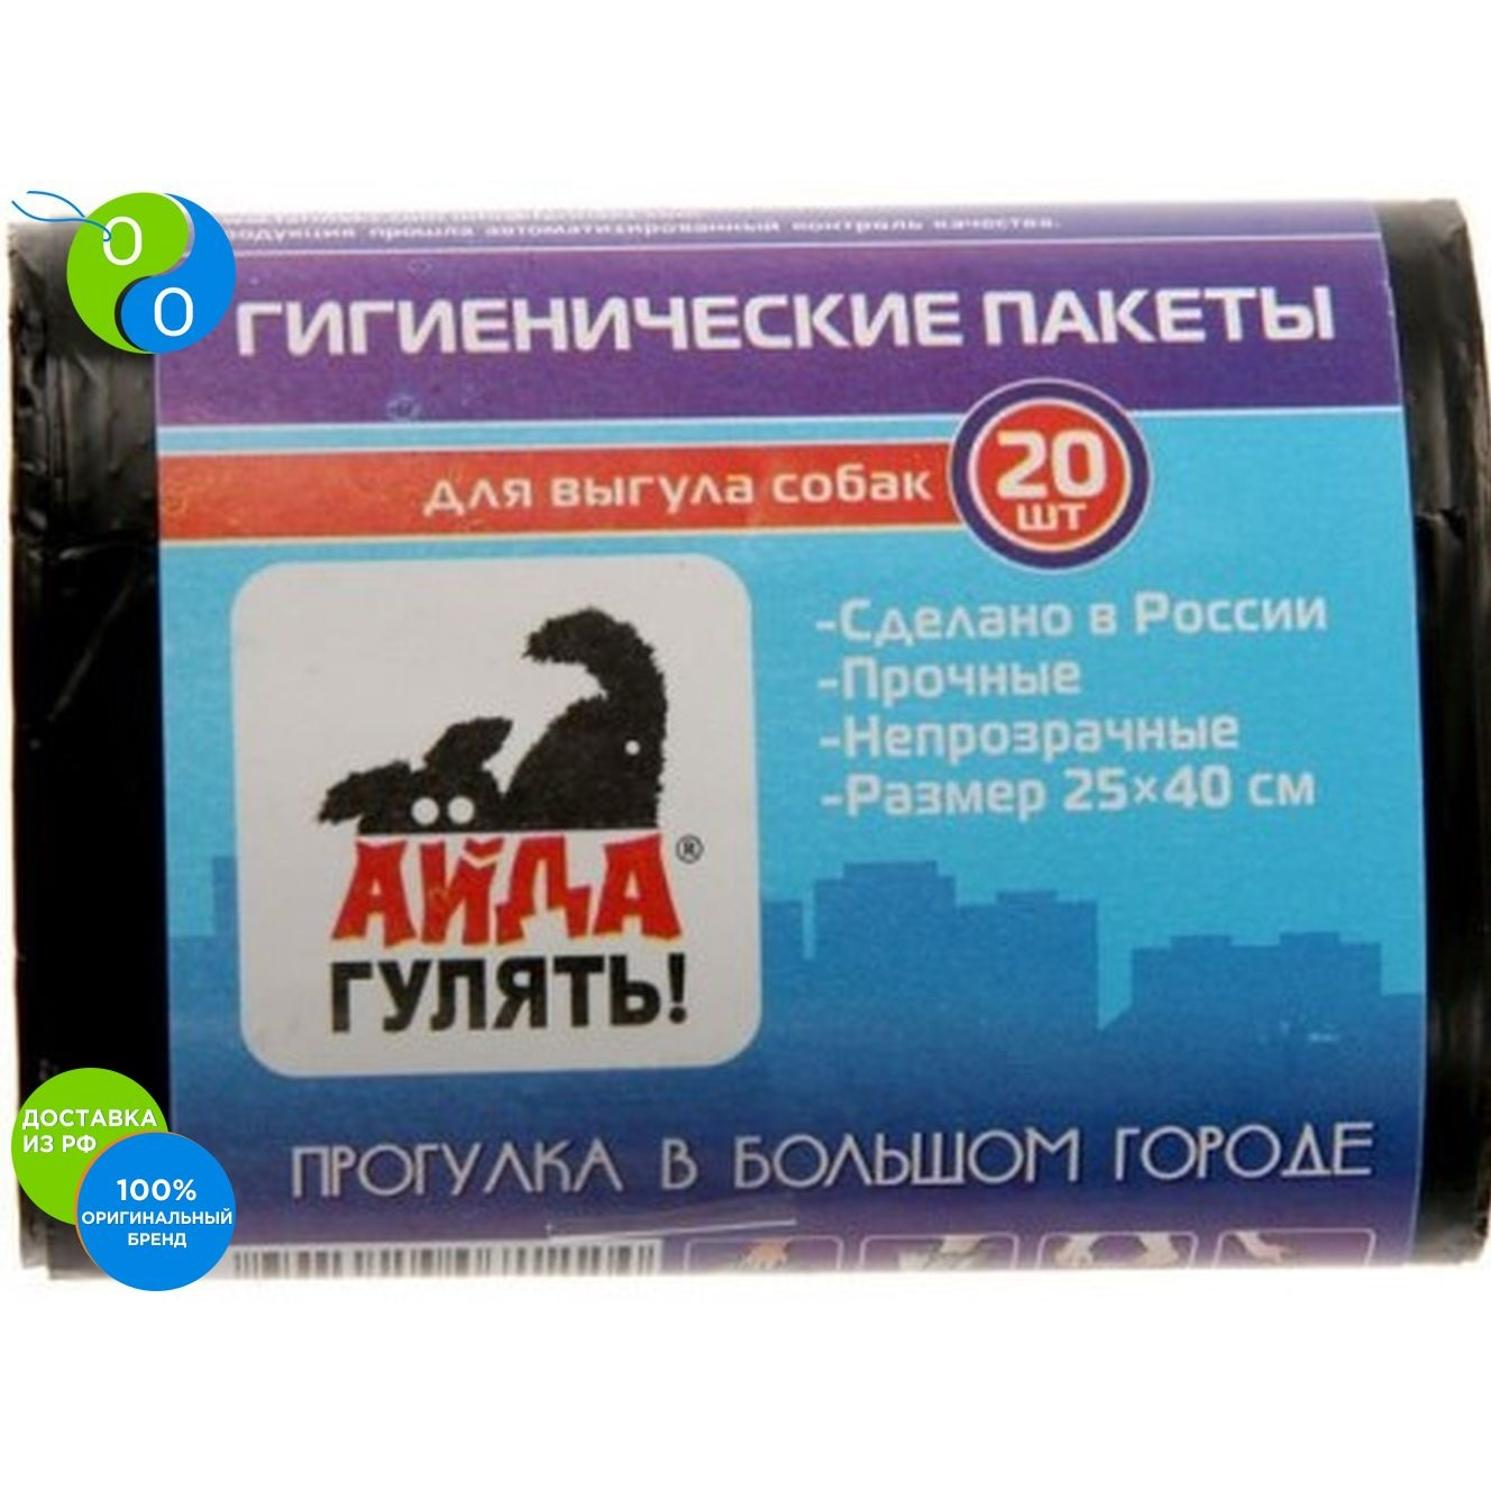 Let's go for a walk! Packages gigienicheskiedlya dog walking 20 packets,AydaGulyat, Aida walk, walk ah yes, let's go for a walk, pet cream, cream paws, feet protection, paws, bags ekskrimentov, bags for dogs, bags for цена